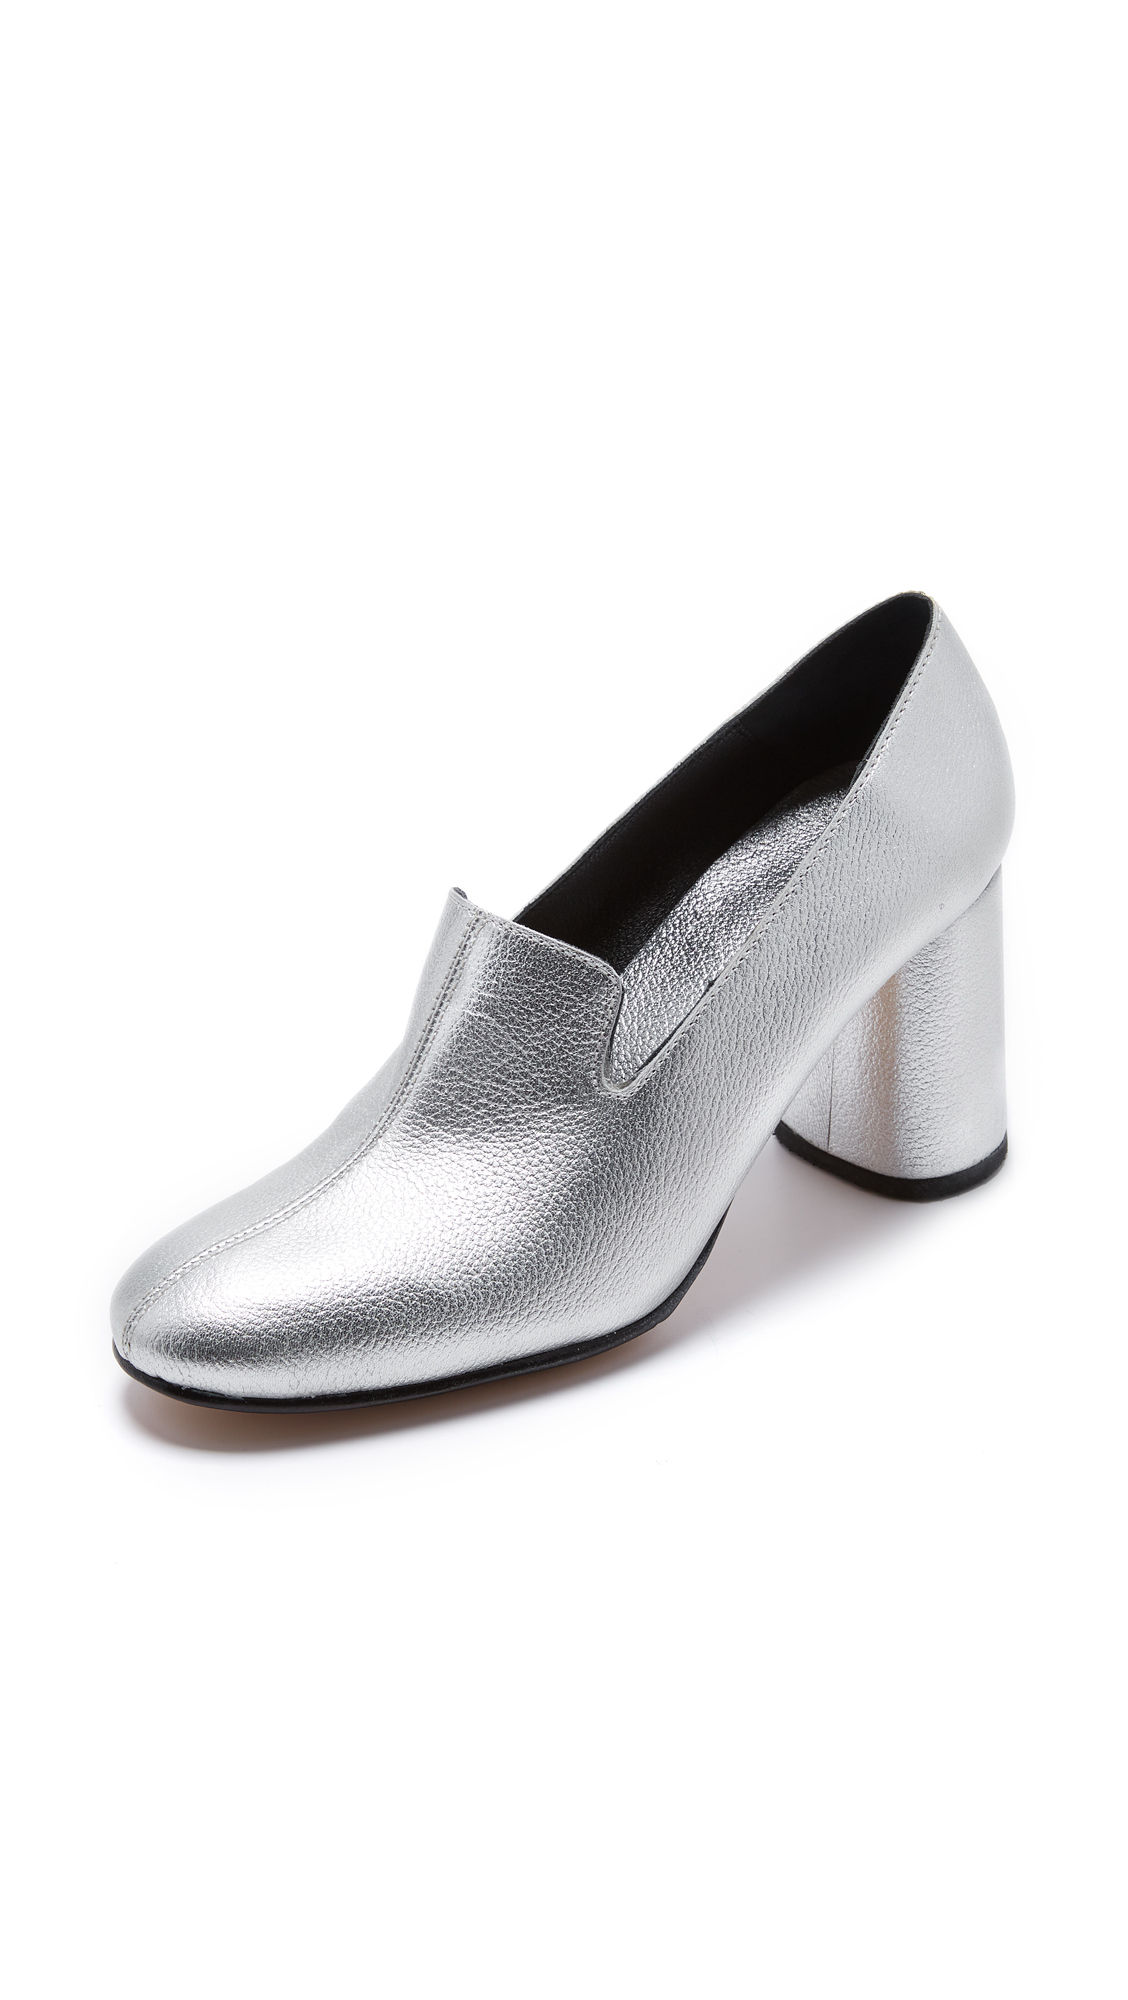 Rachel Comey May Pumps - Silver